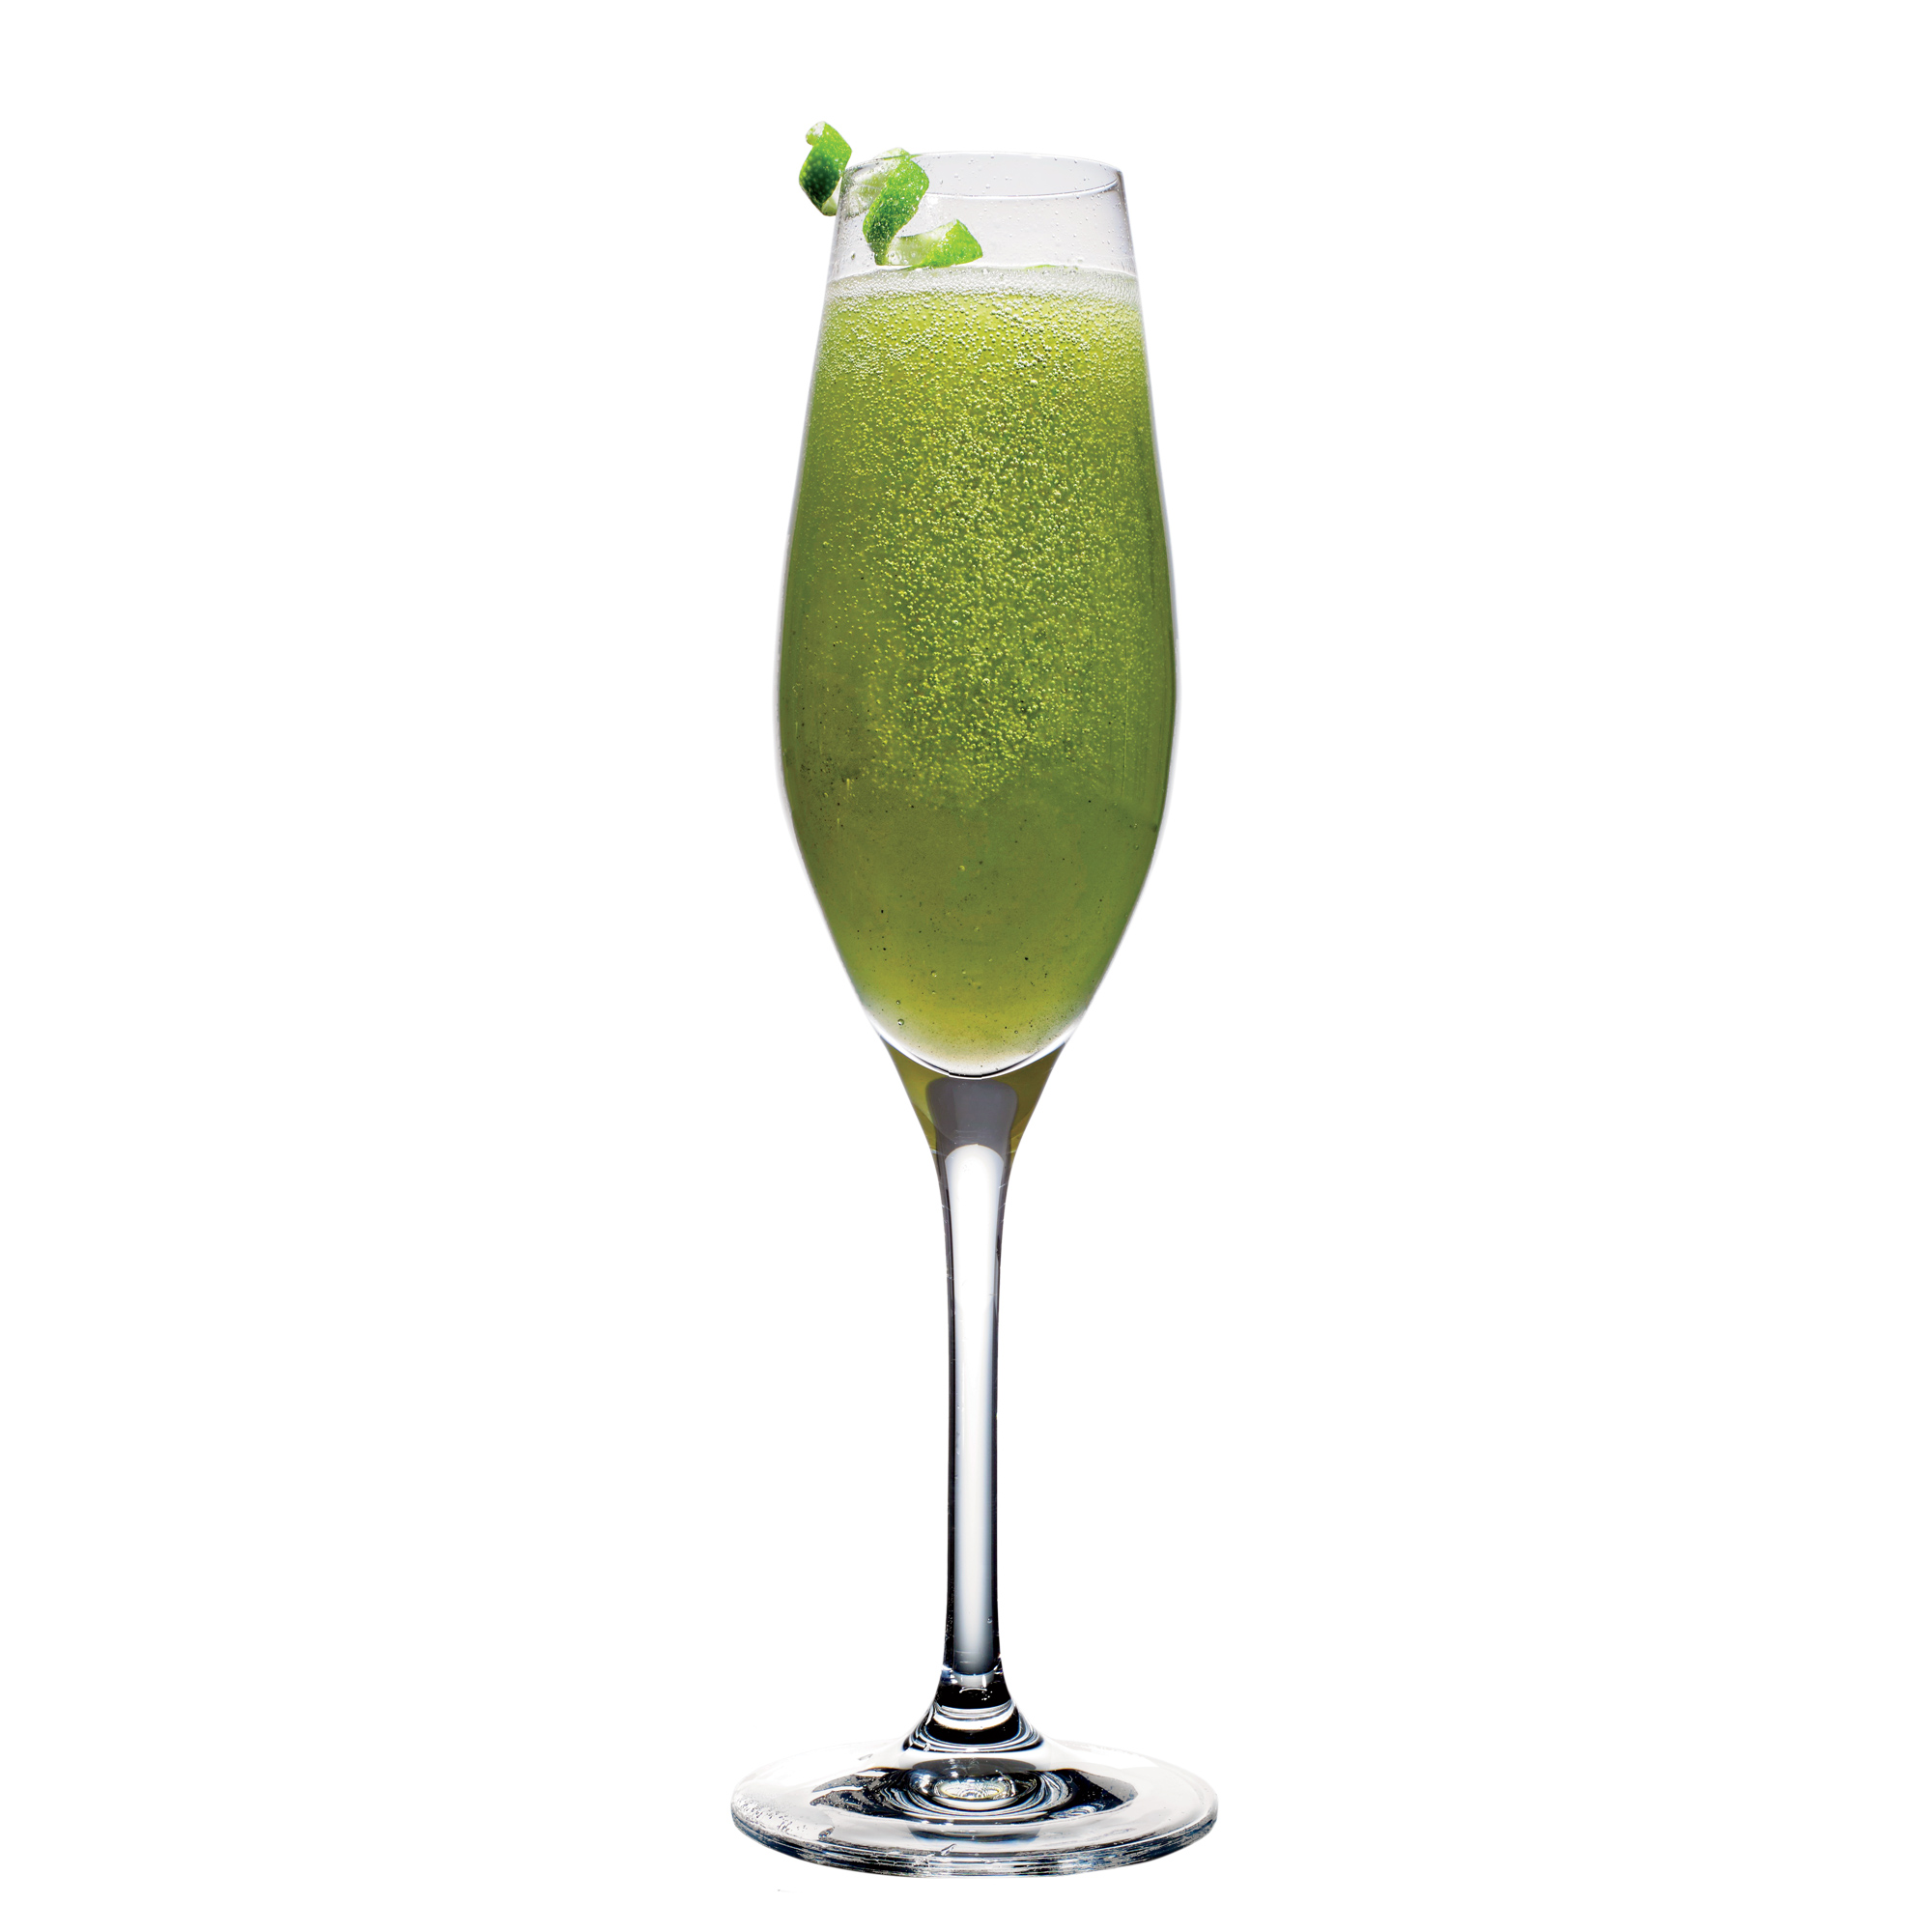 cl-Sparkling Matcha Mint Cocktail Image